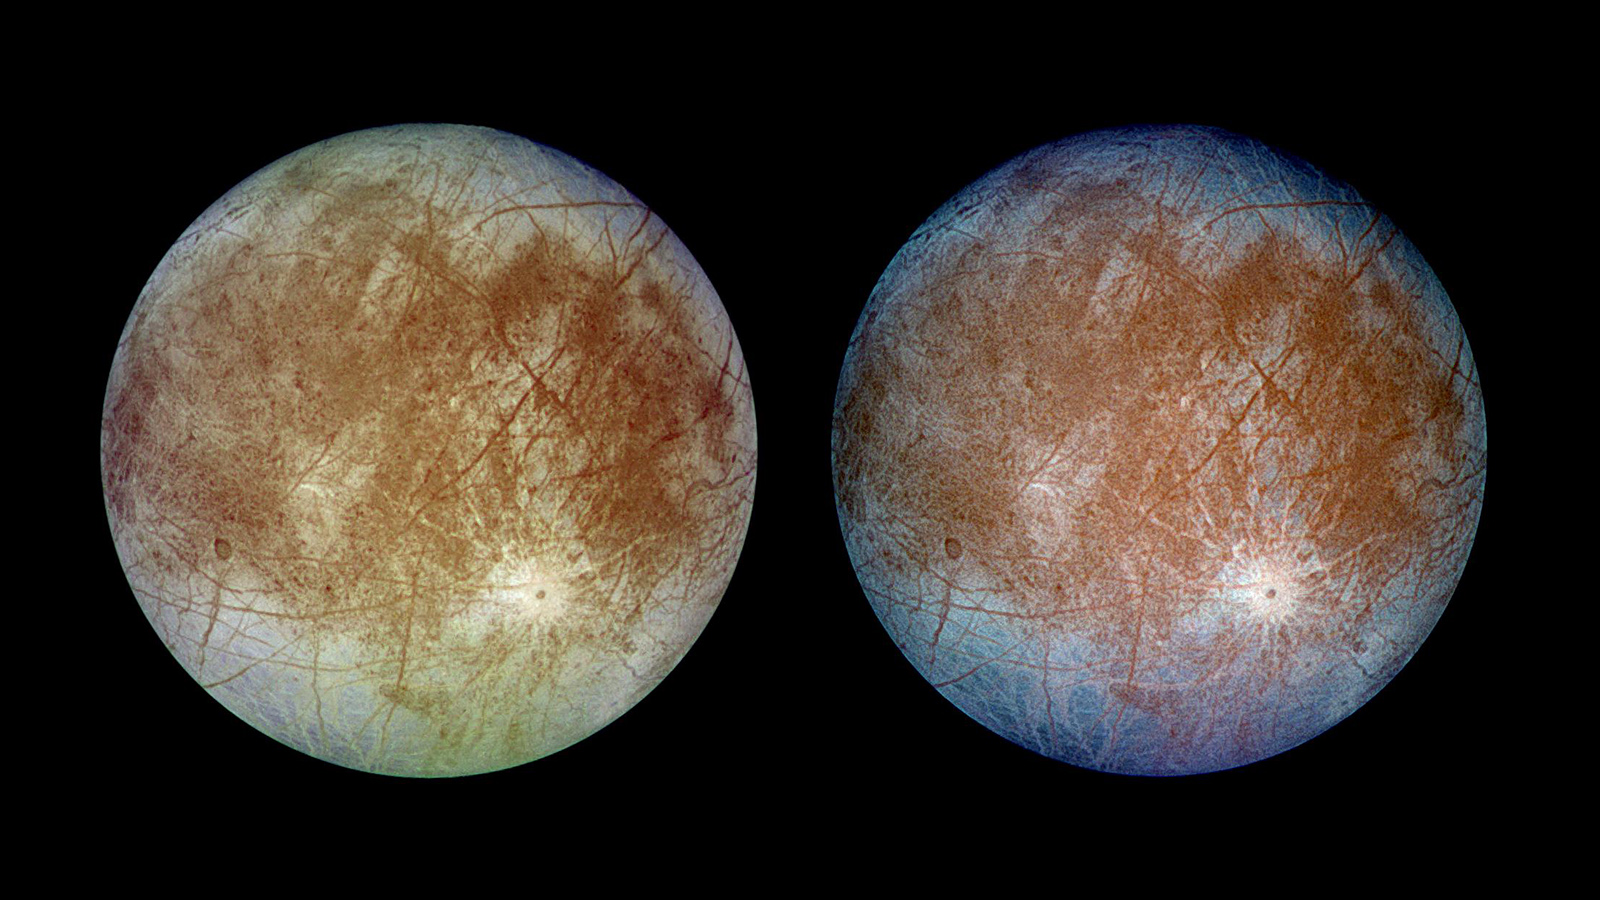 slide 6 - Twin color images of Europa. One shows more detail.